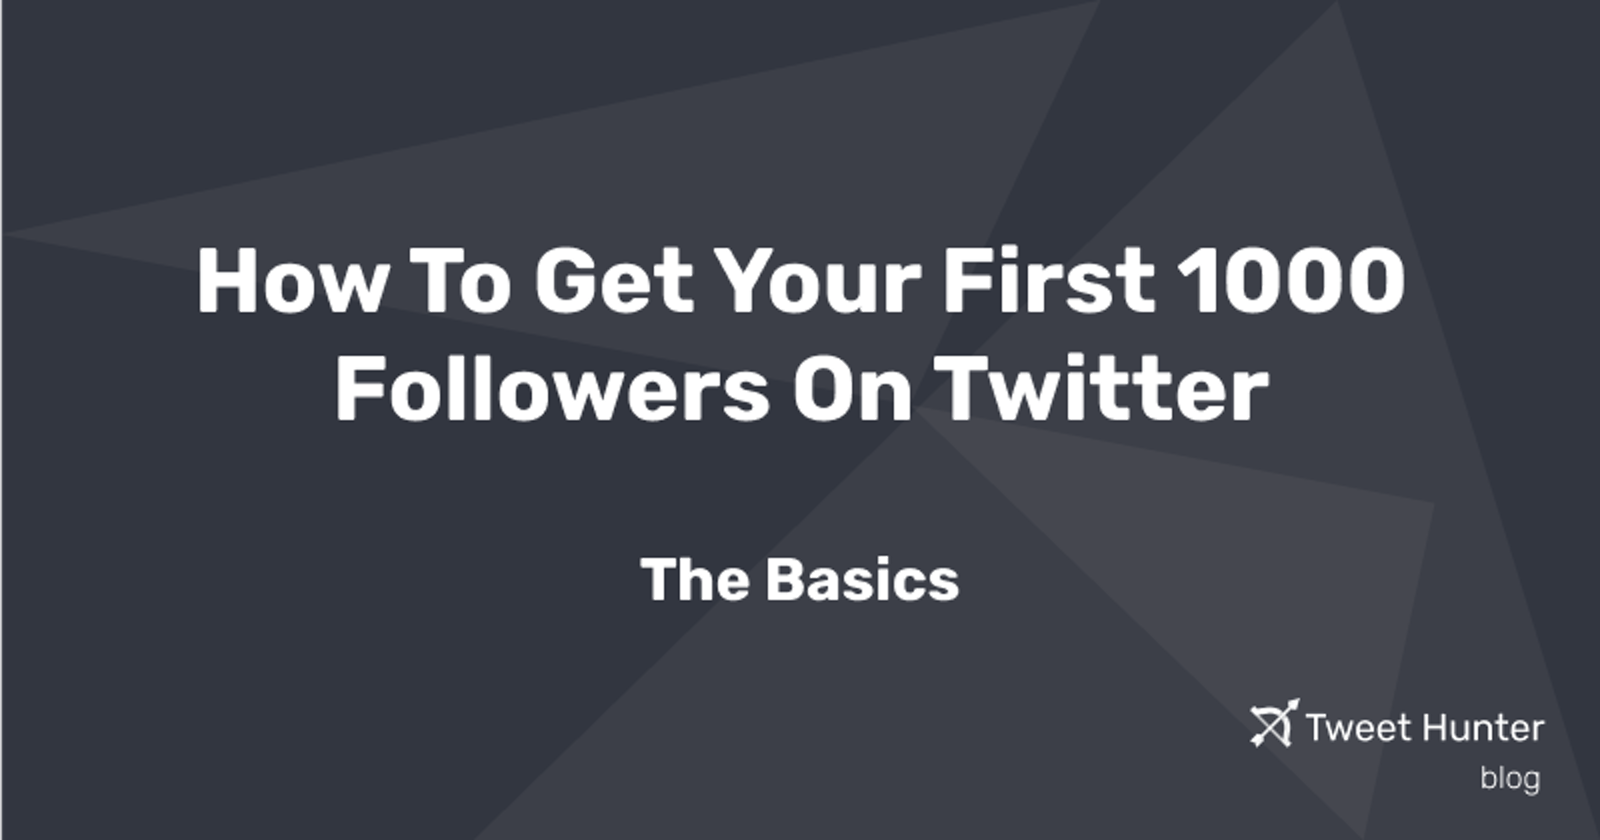 How To Get Your First 1000 Followers On Twitter